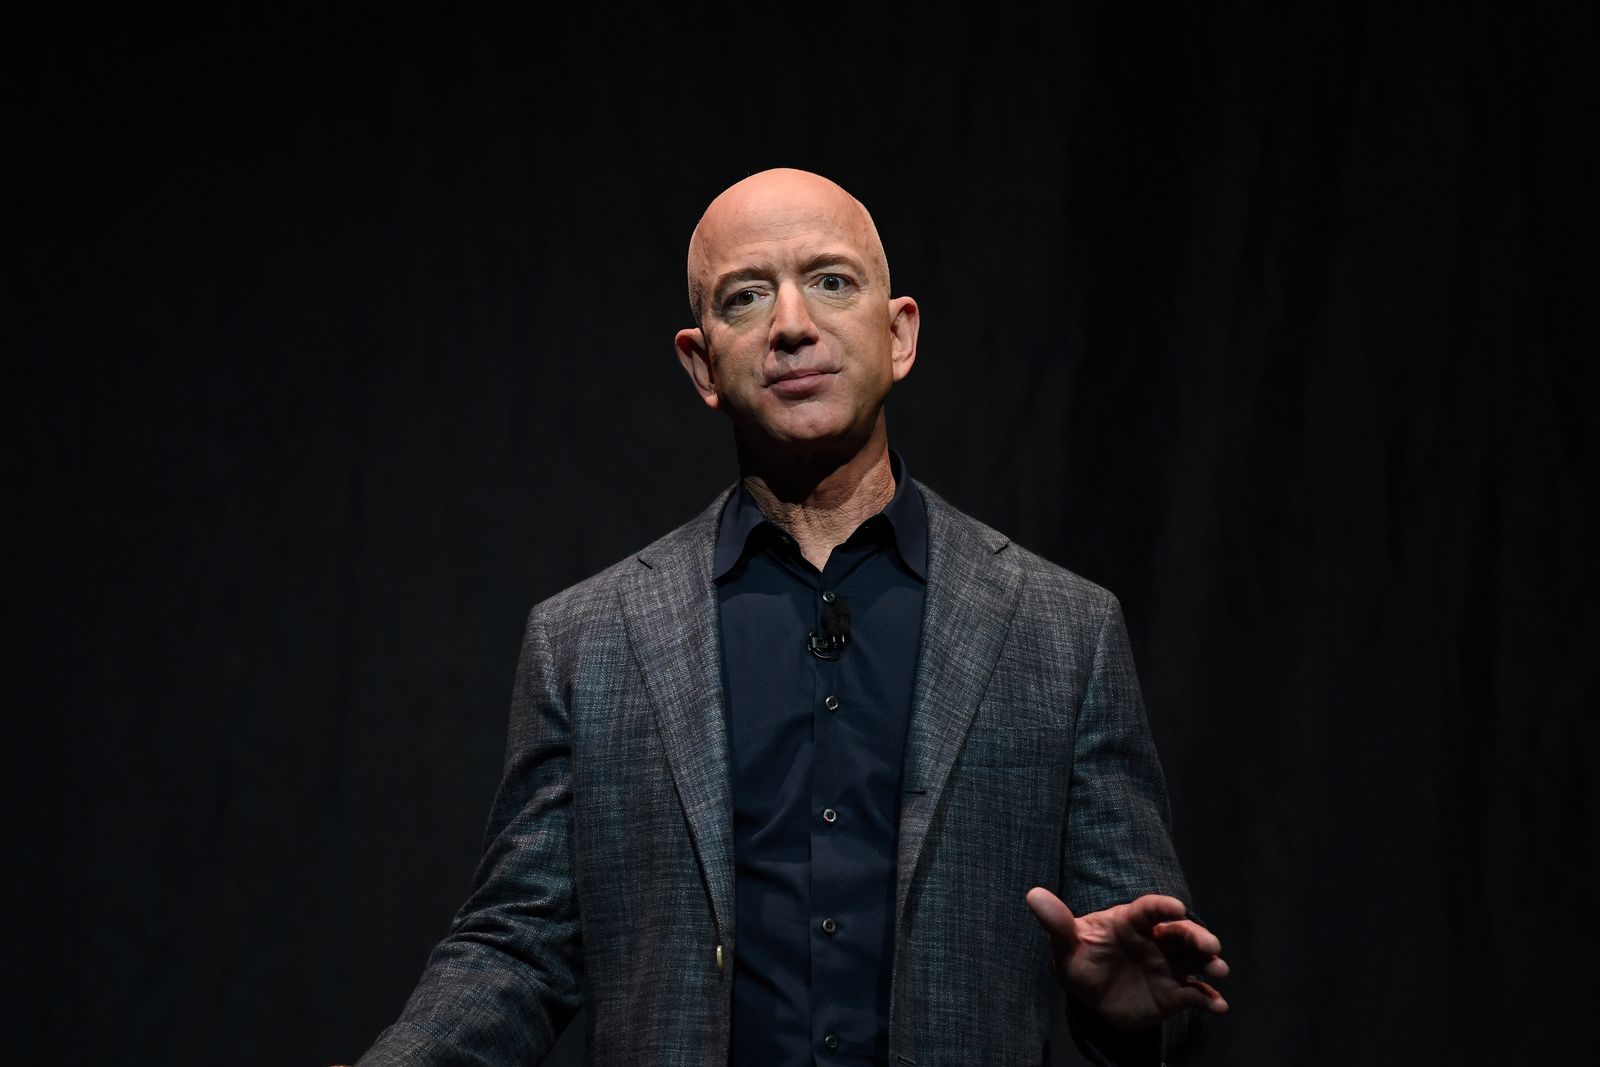 FILE PHOTO: Founder, Chairman, CEO and President of Amazon Jeff Bezos speaks during an event about Blue Origin's space exploration plans in Washington